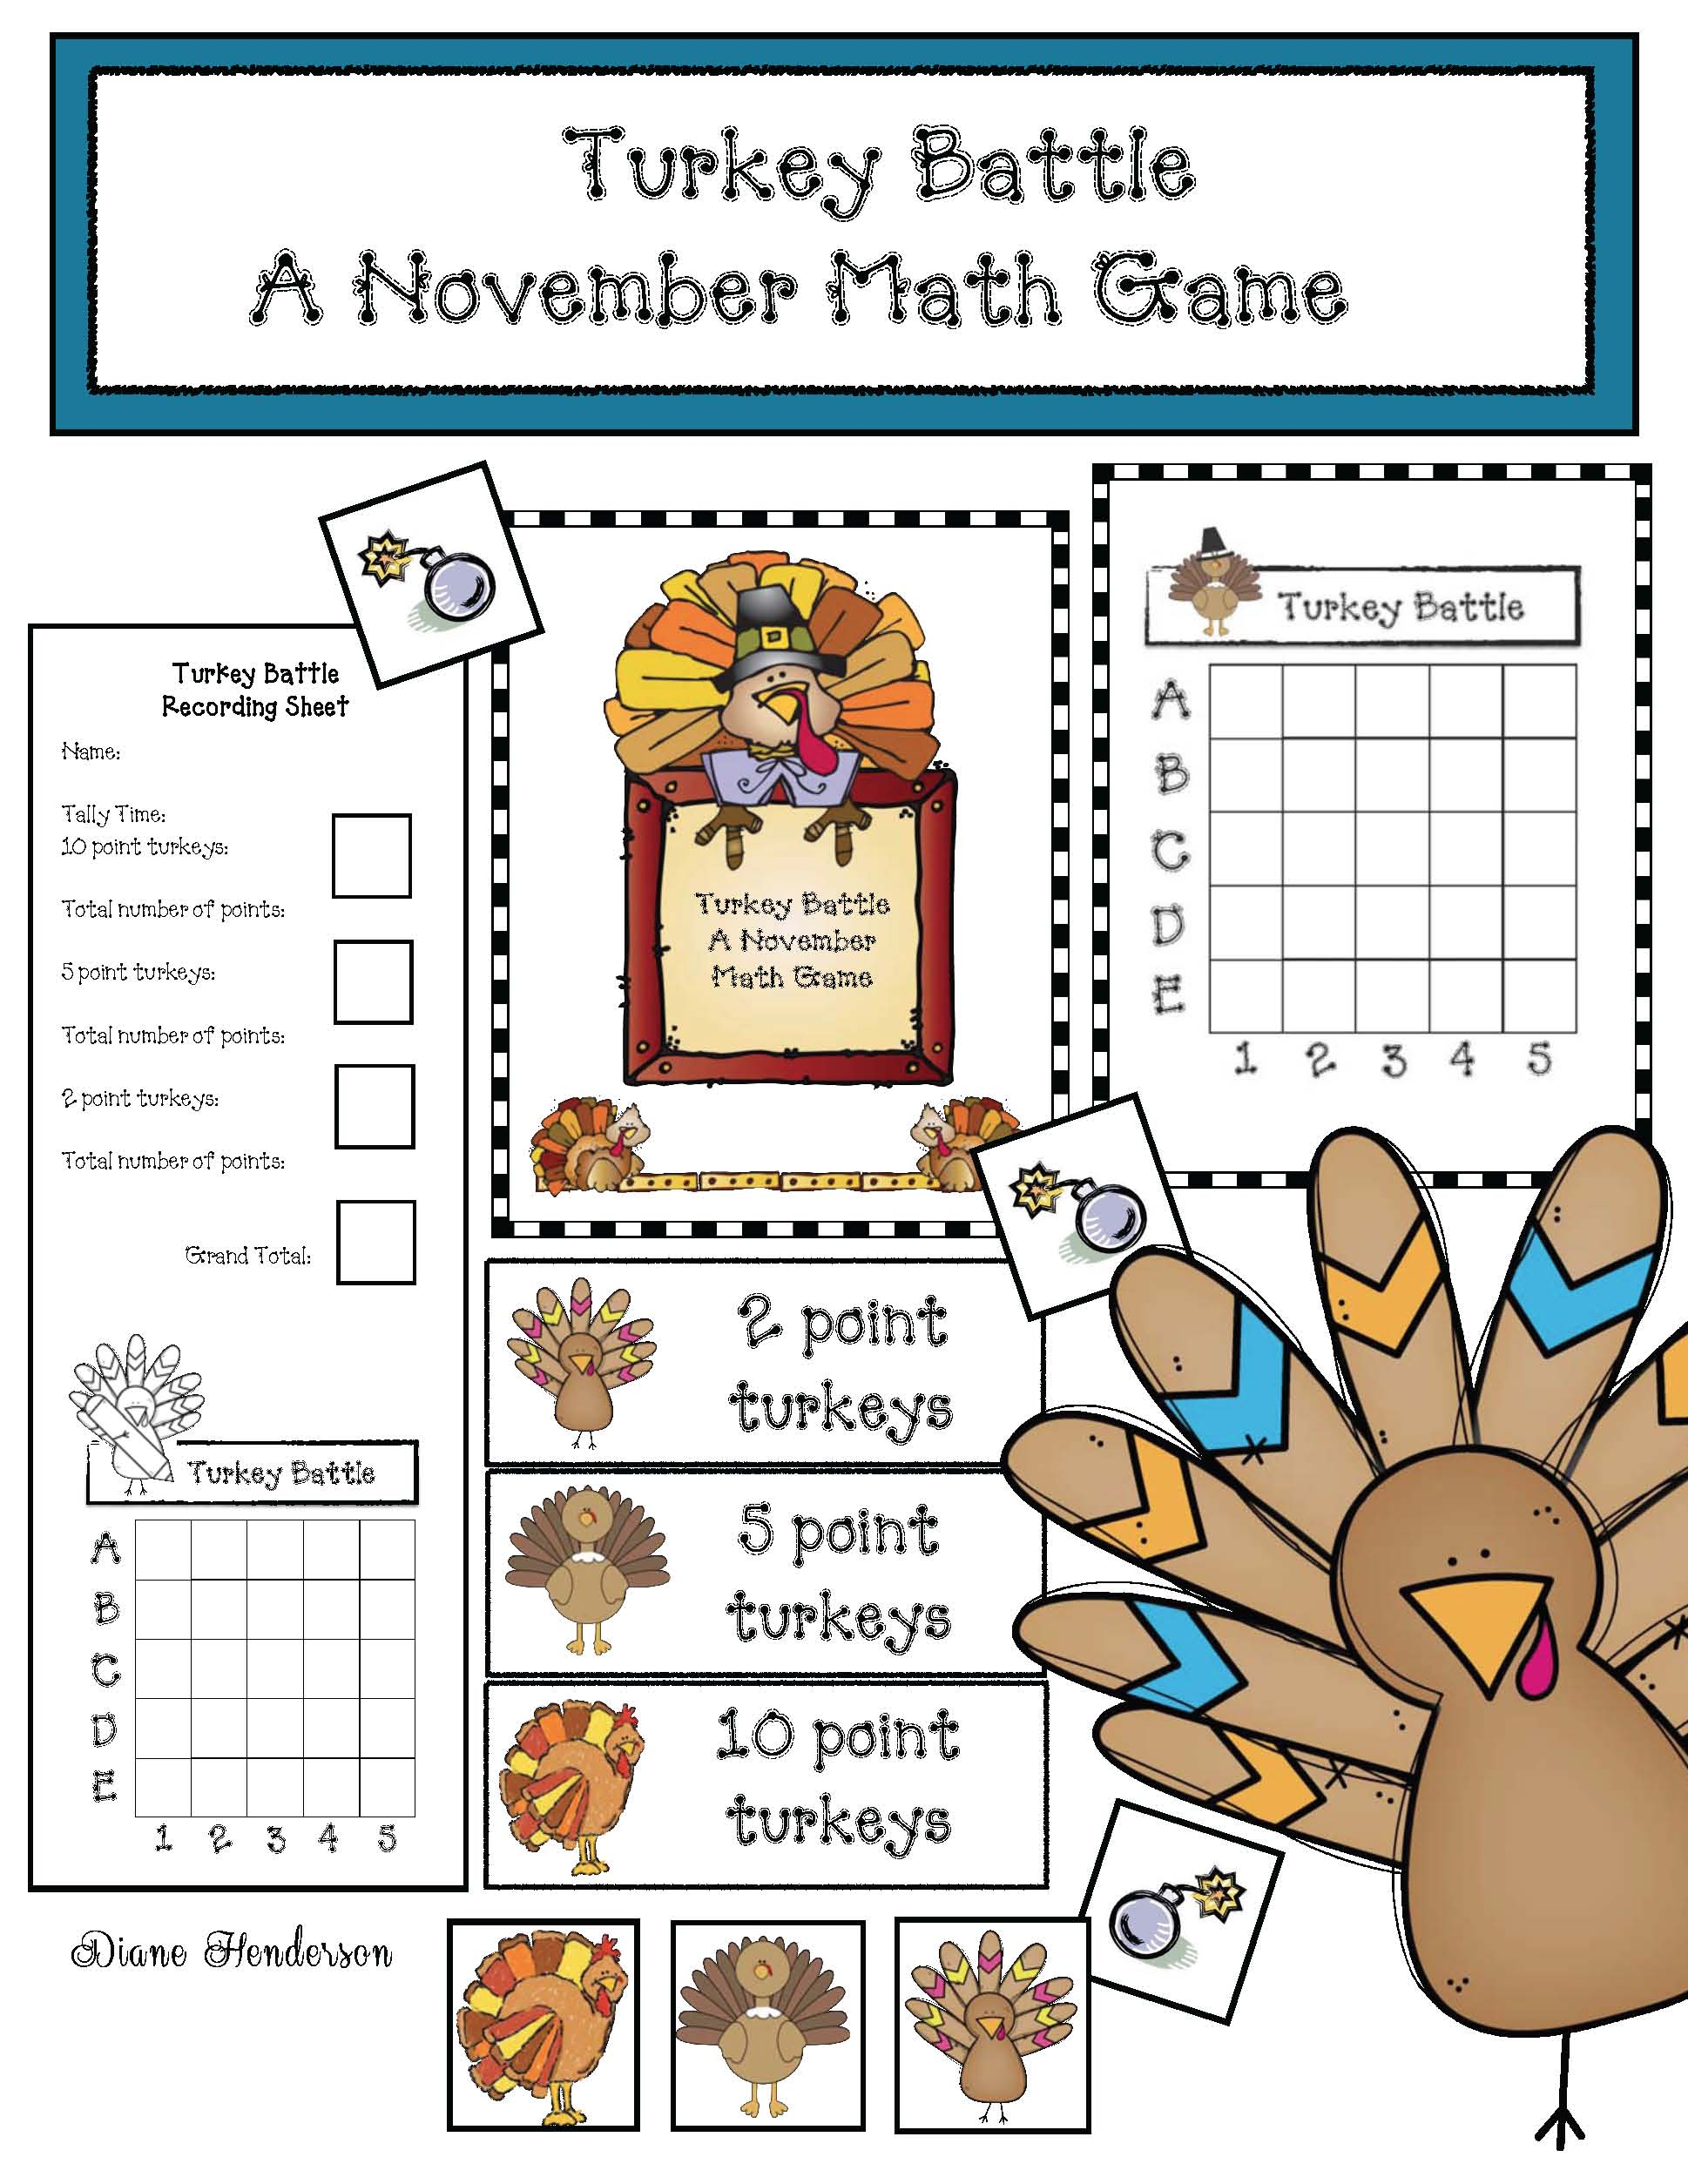 pilgrim activities, thanksgiving activities, thanksgiving games, thanksgiving math, thanksgiving centers, place value activities, place value games, ordered pairs, turkey activities, turkey games, turkey centers, skip counting activities, skip counting by 2s, 5s, 10s